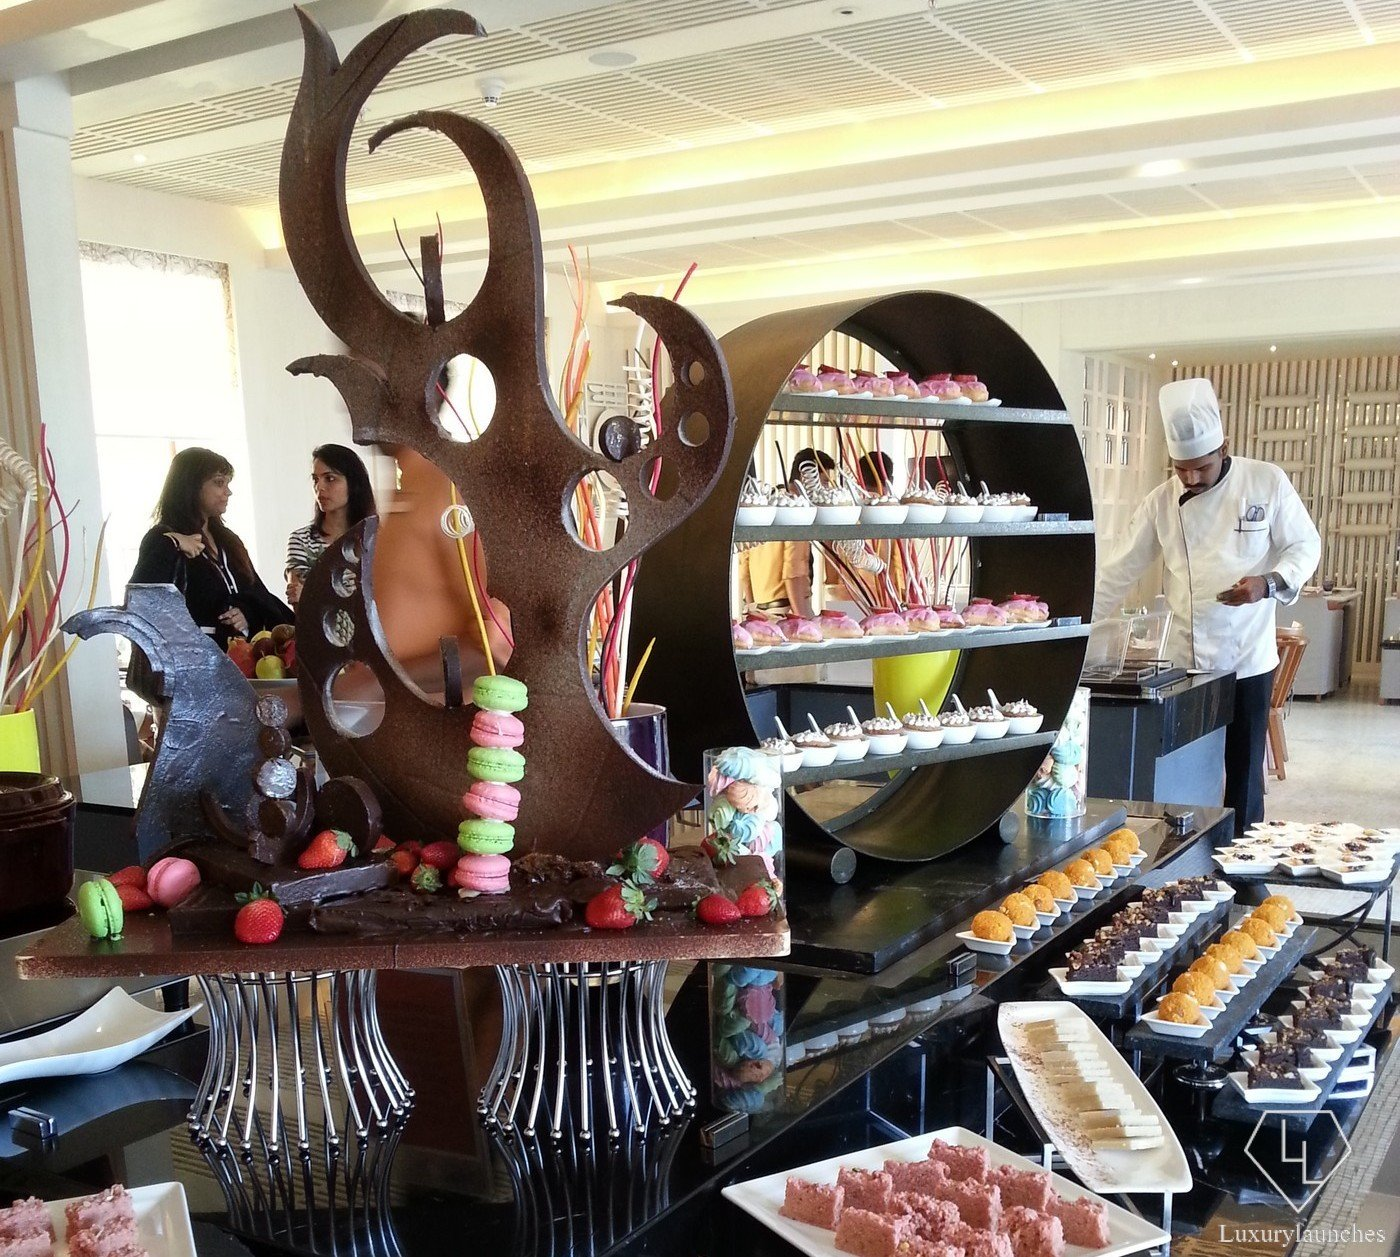 Array of desserts in the Latest Recipe buffet